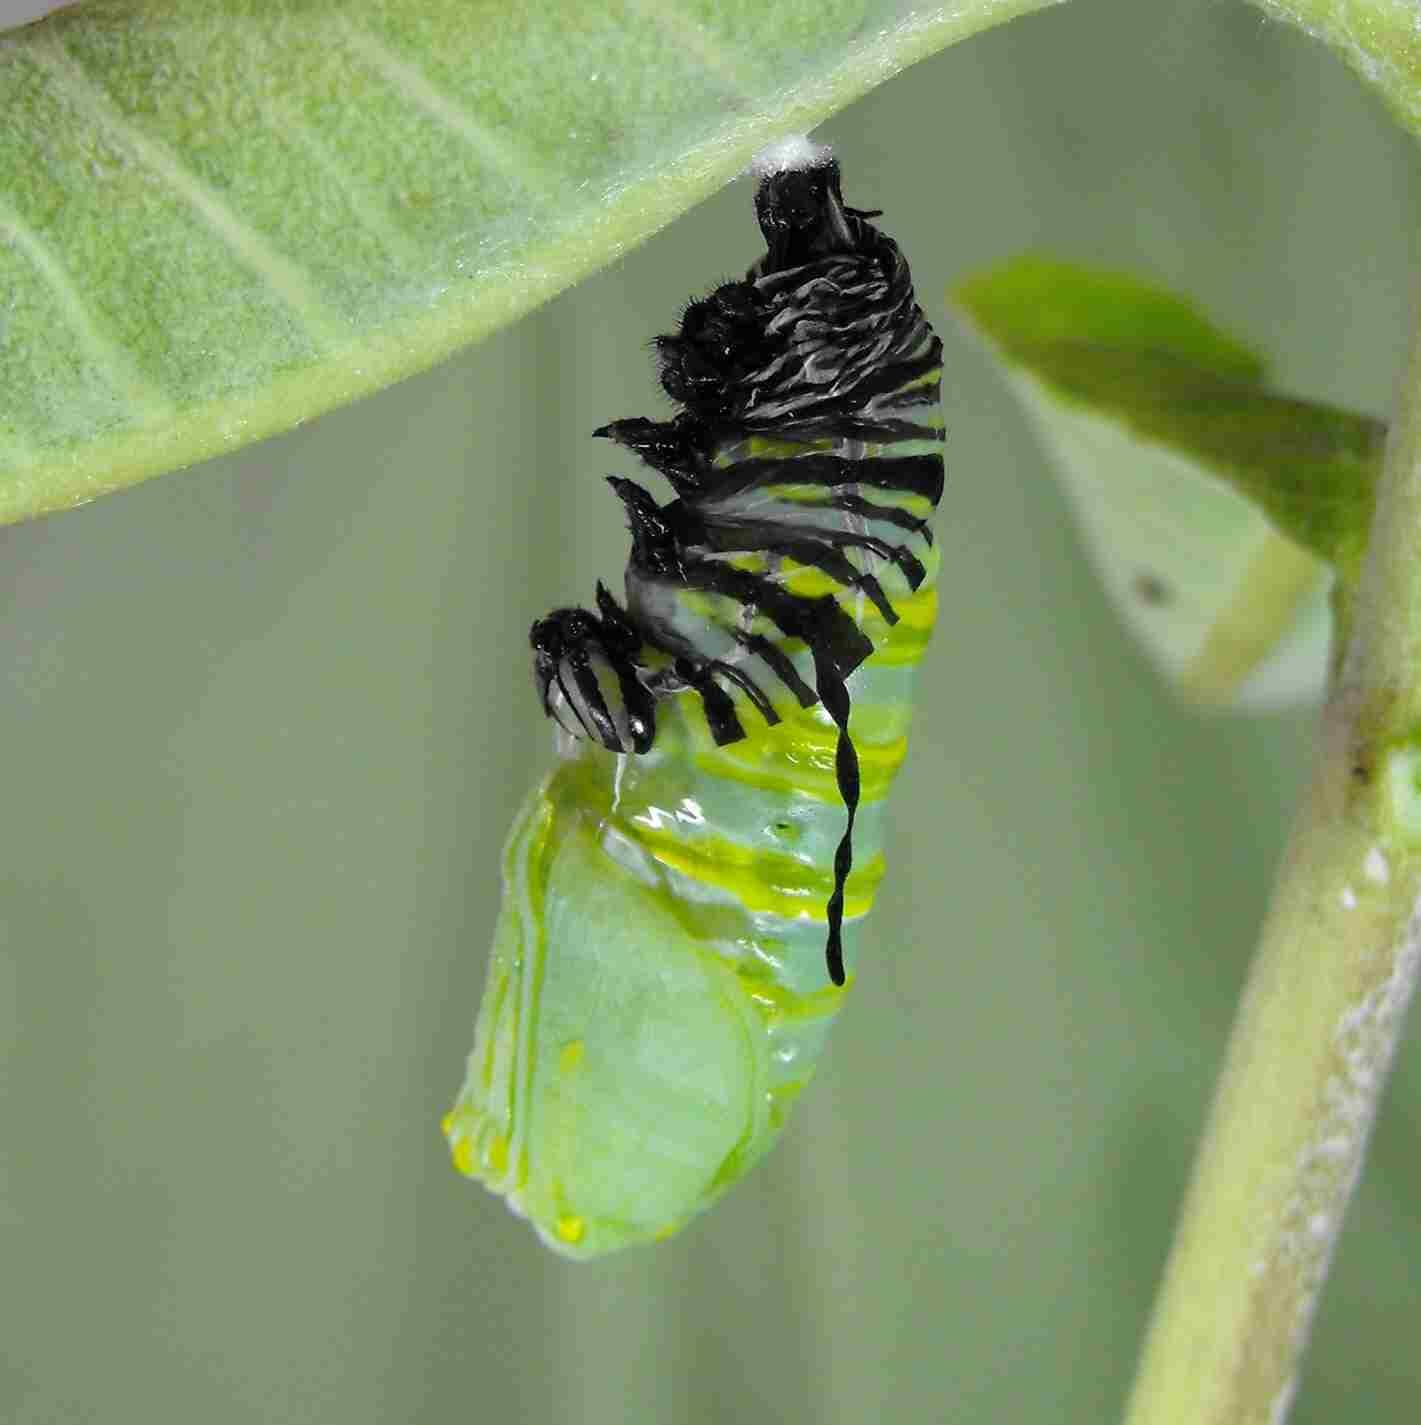 Chrysalis formation to butterfly emergence via indepth